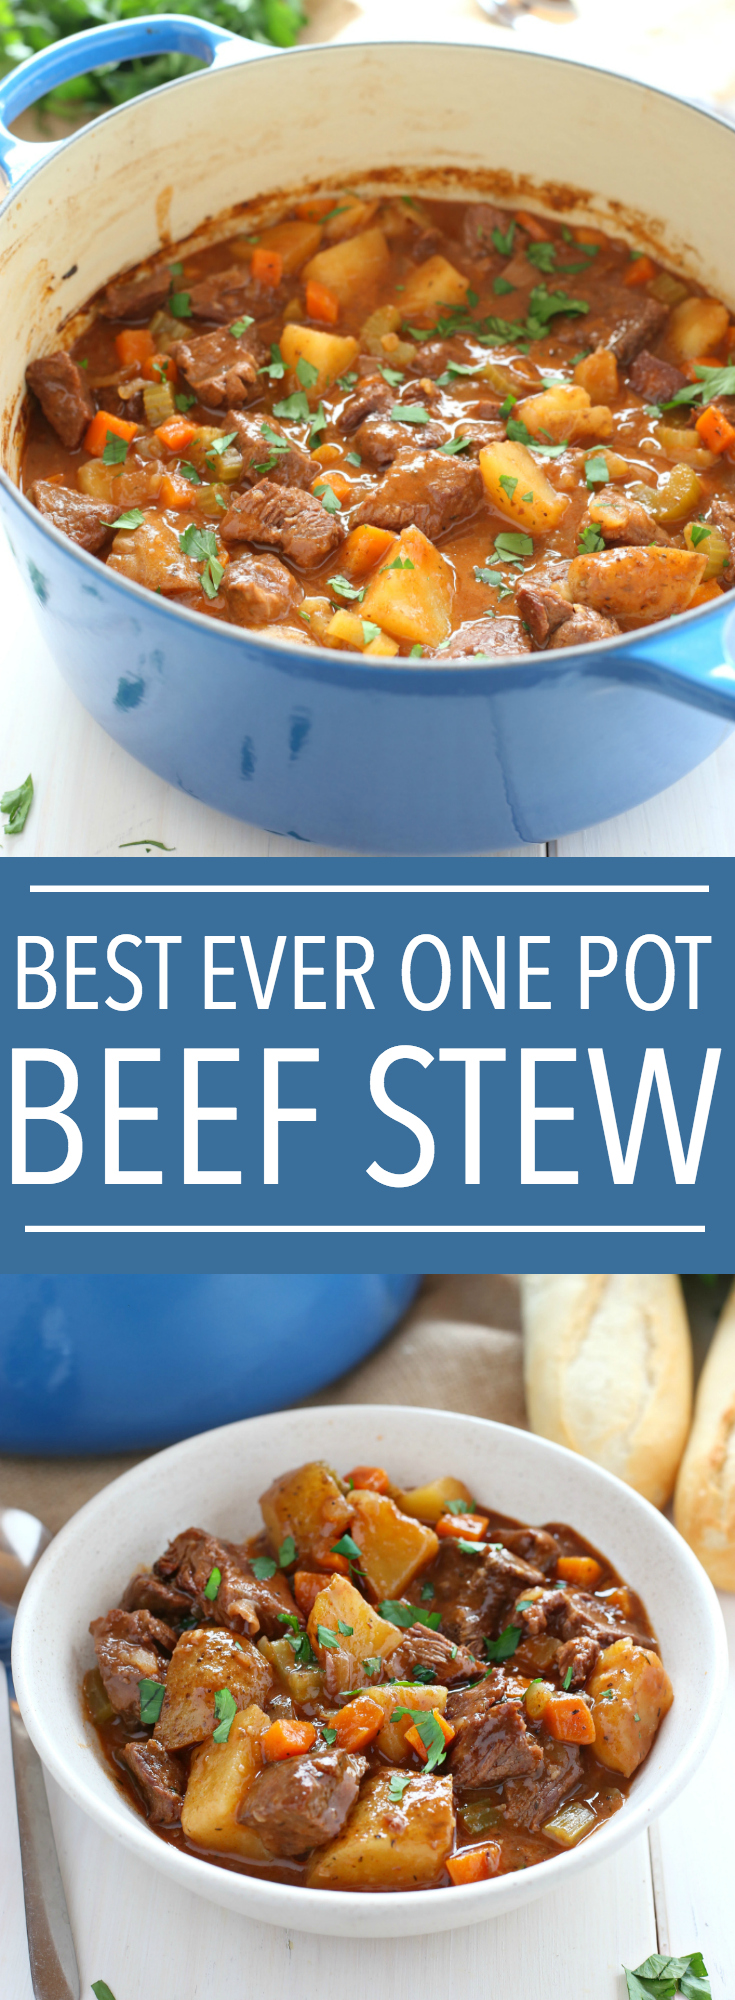 This Best Ever One Pot Beef Stew is an easy, classic beef stew recipe that cooks to perfection on the stove top and in the oven. It's the best comfort food! Recipe from thebusybaker.ca #comfortfood #bestbeefstewrecipe #besteverbeefstew #easybeefstew #winterstew #soup via @busybakerblog